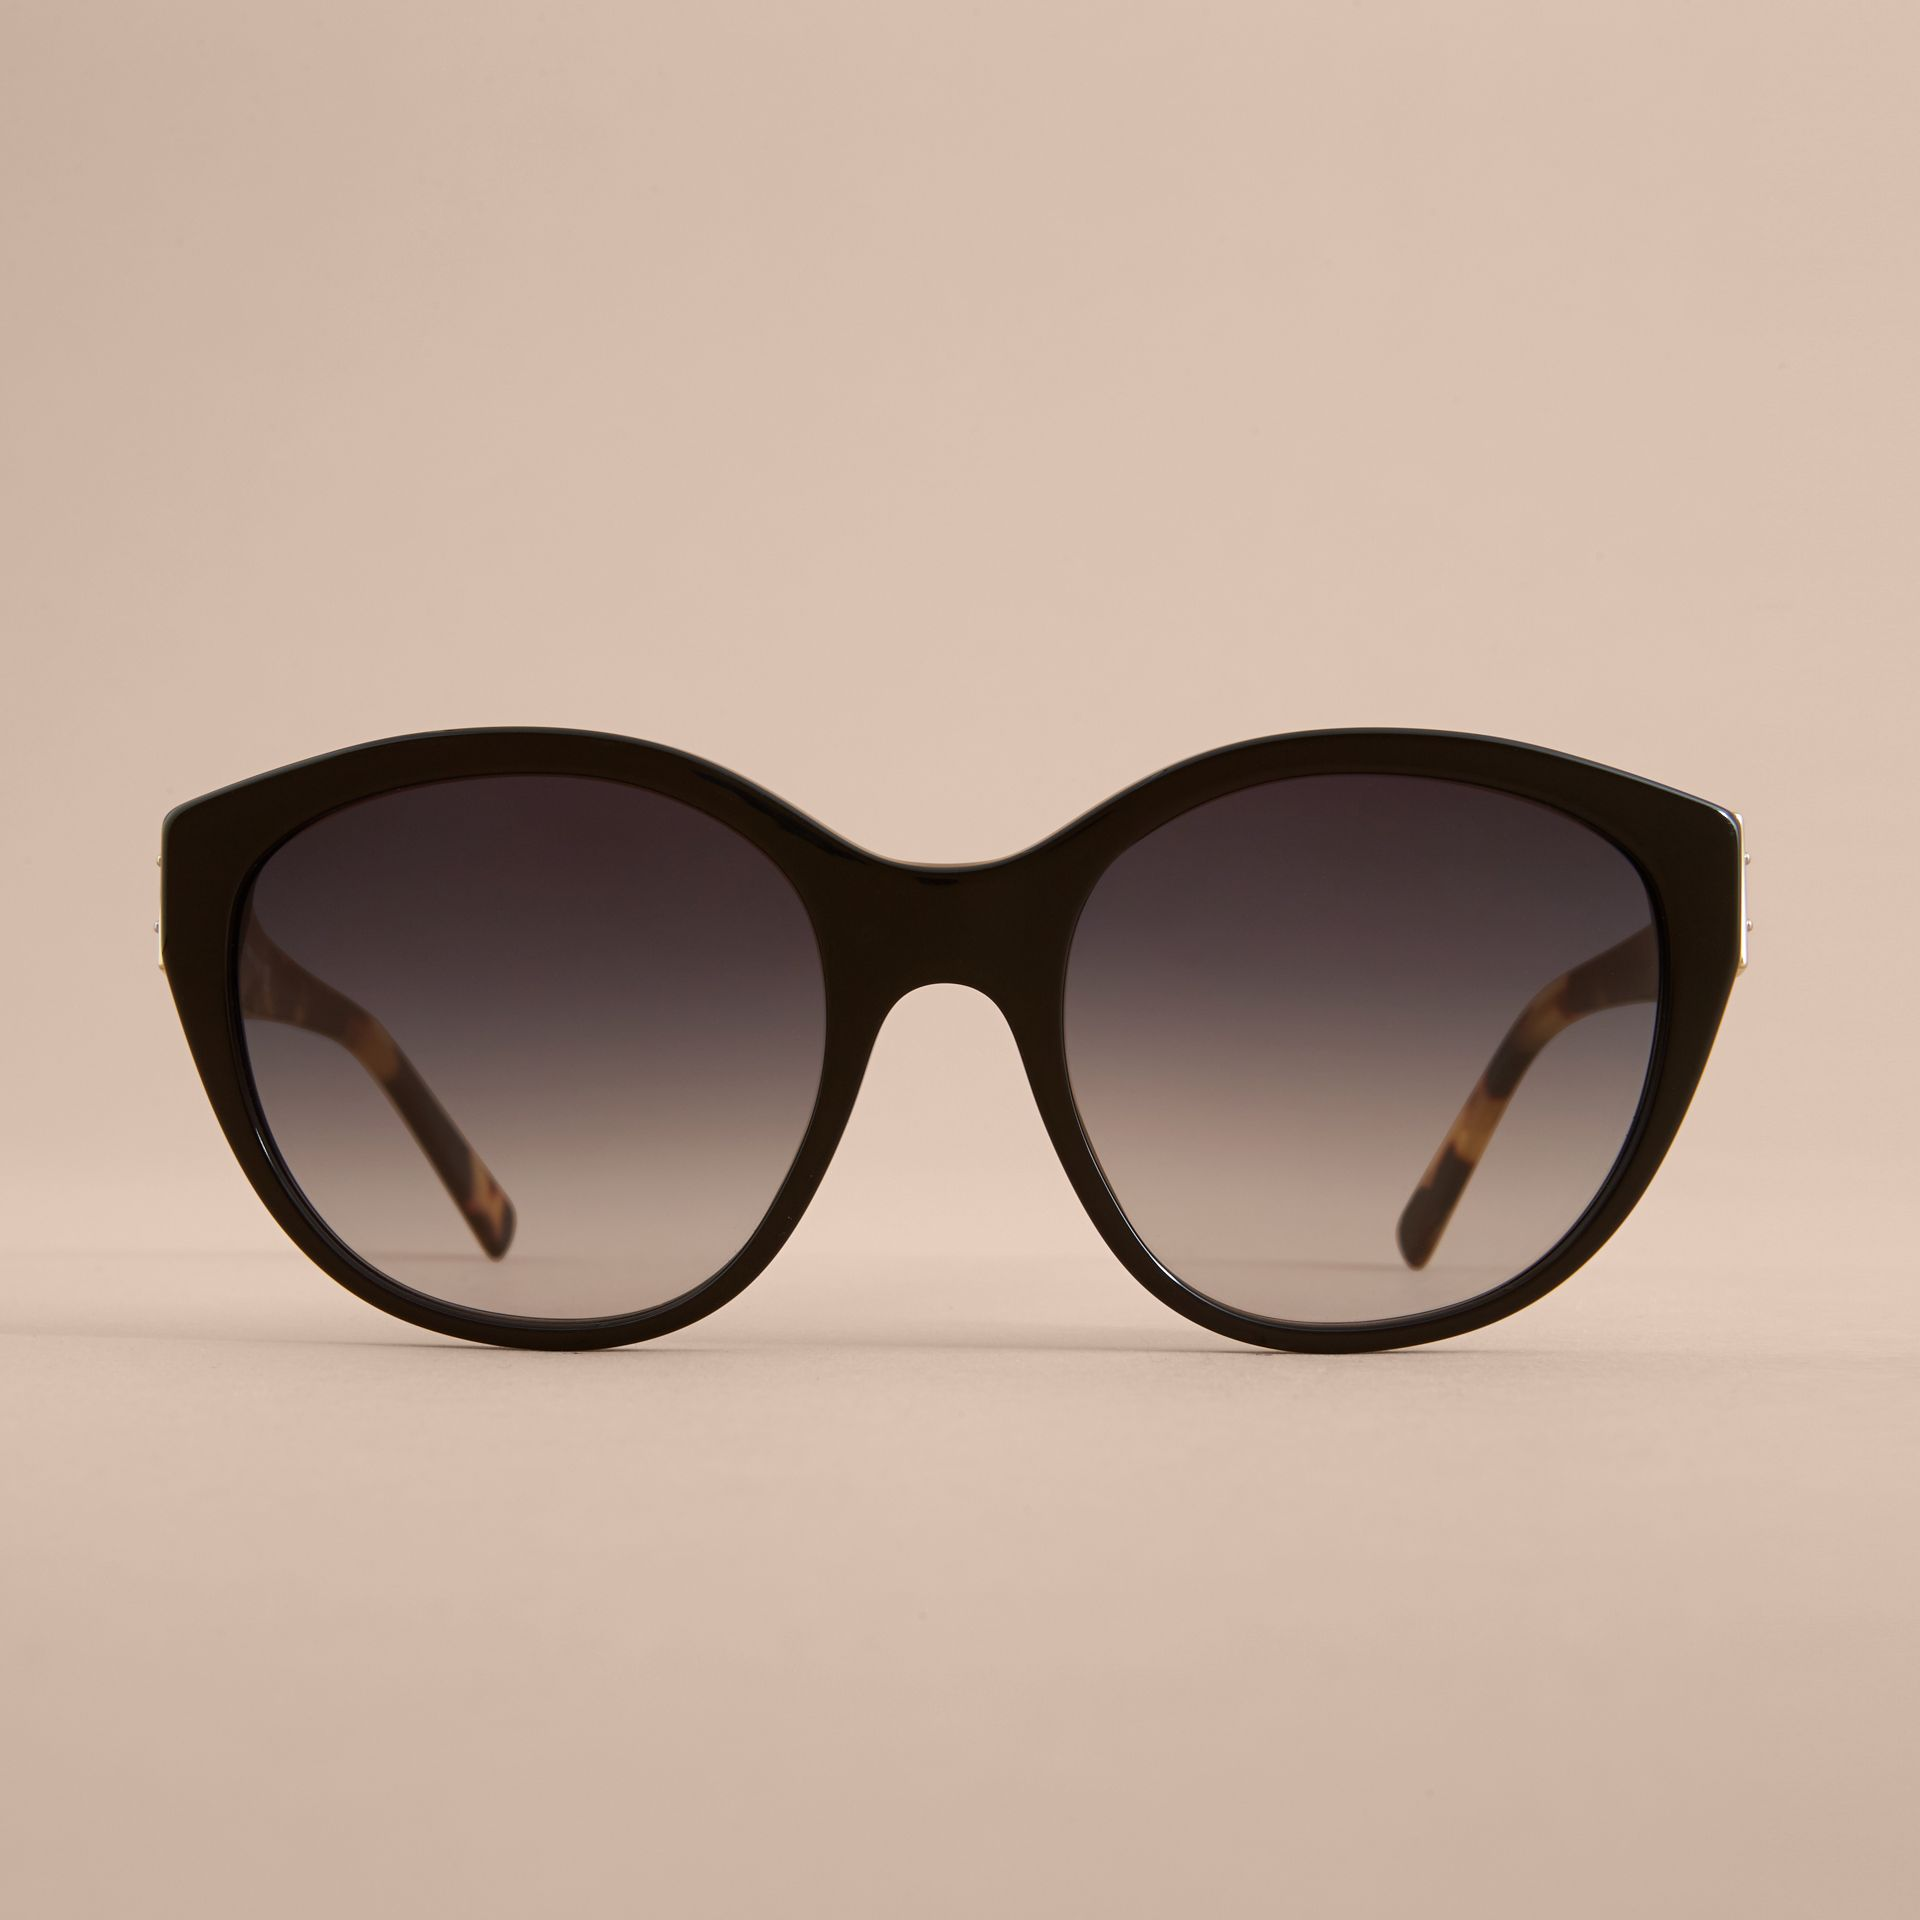 Buckle Detail Round Frame Sunglasses in Black - Women | Burberry - gallery image 3